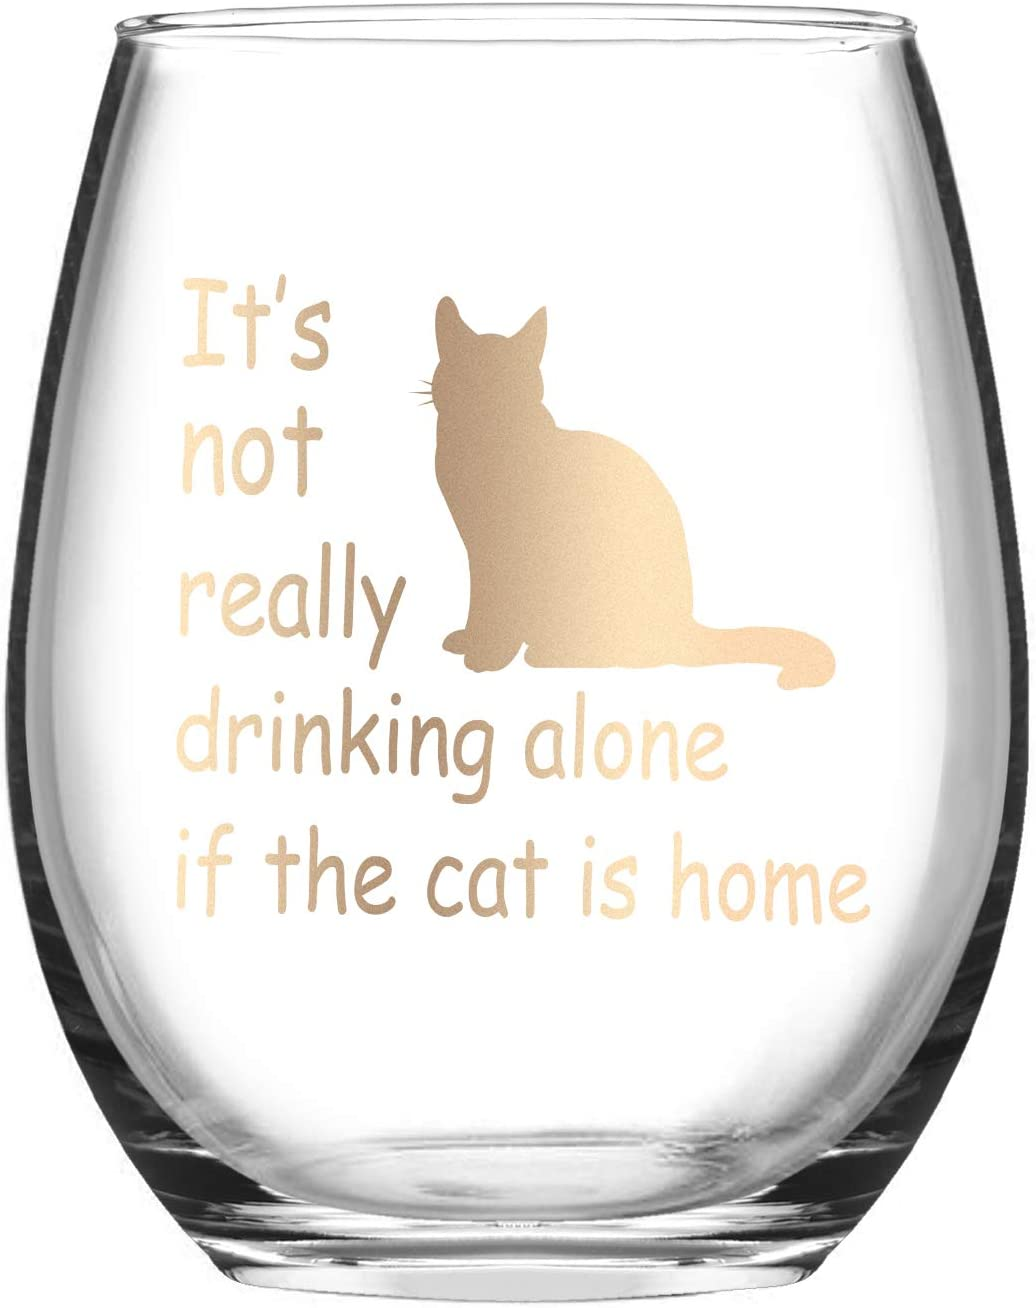 It's Not Really Drinking Alone if the Cat is Home Stemless Wine Glass, Funny Cat Lover Wine Glass for Women Cat Lady Friends Sisters Mom Grandma, Wine Glass for Birthday Christmas Present, 15 Oz